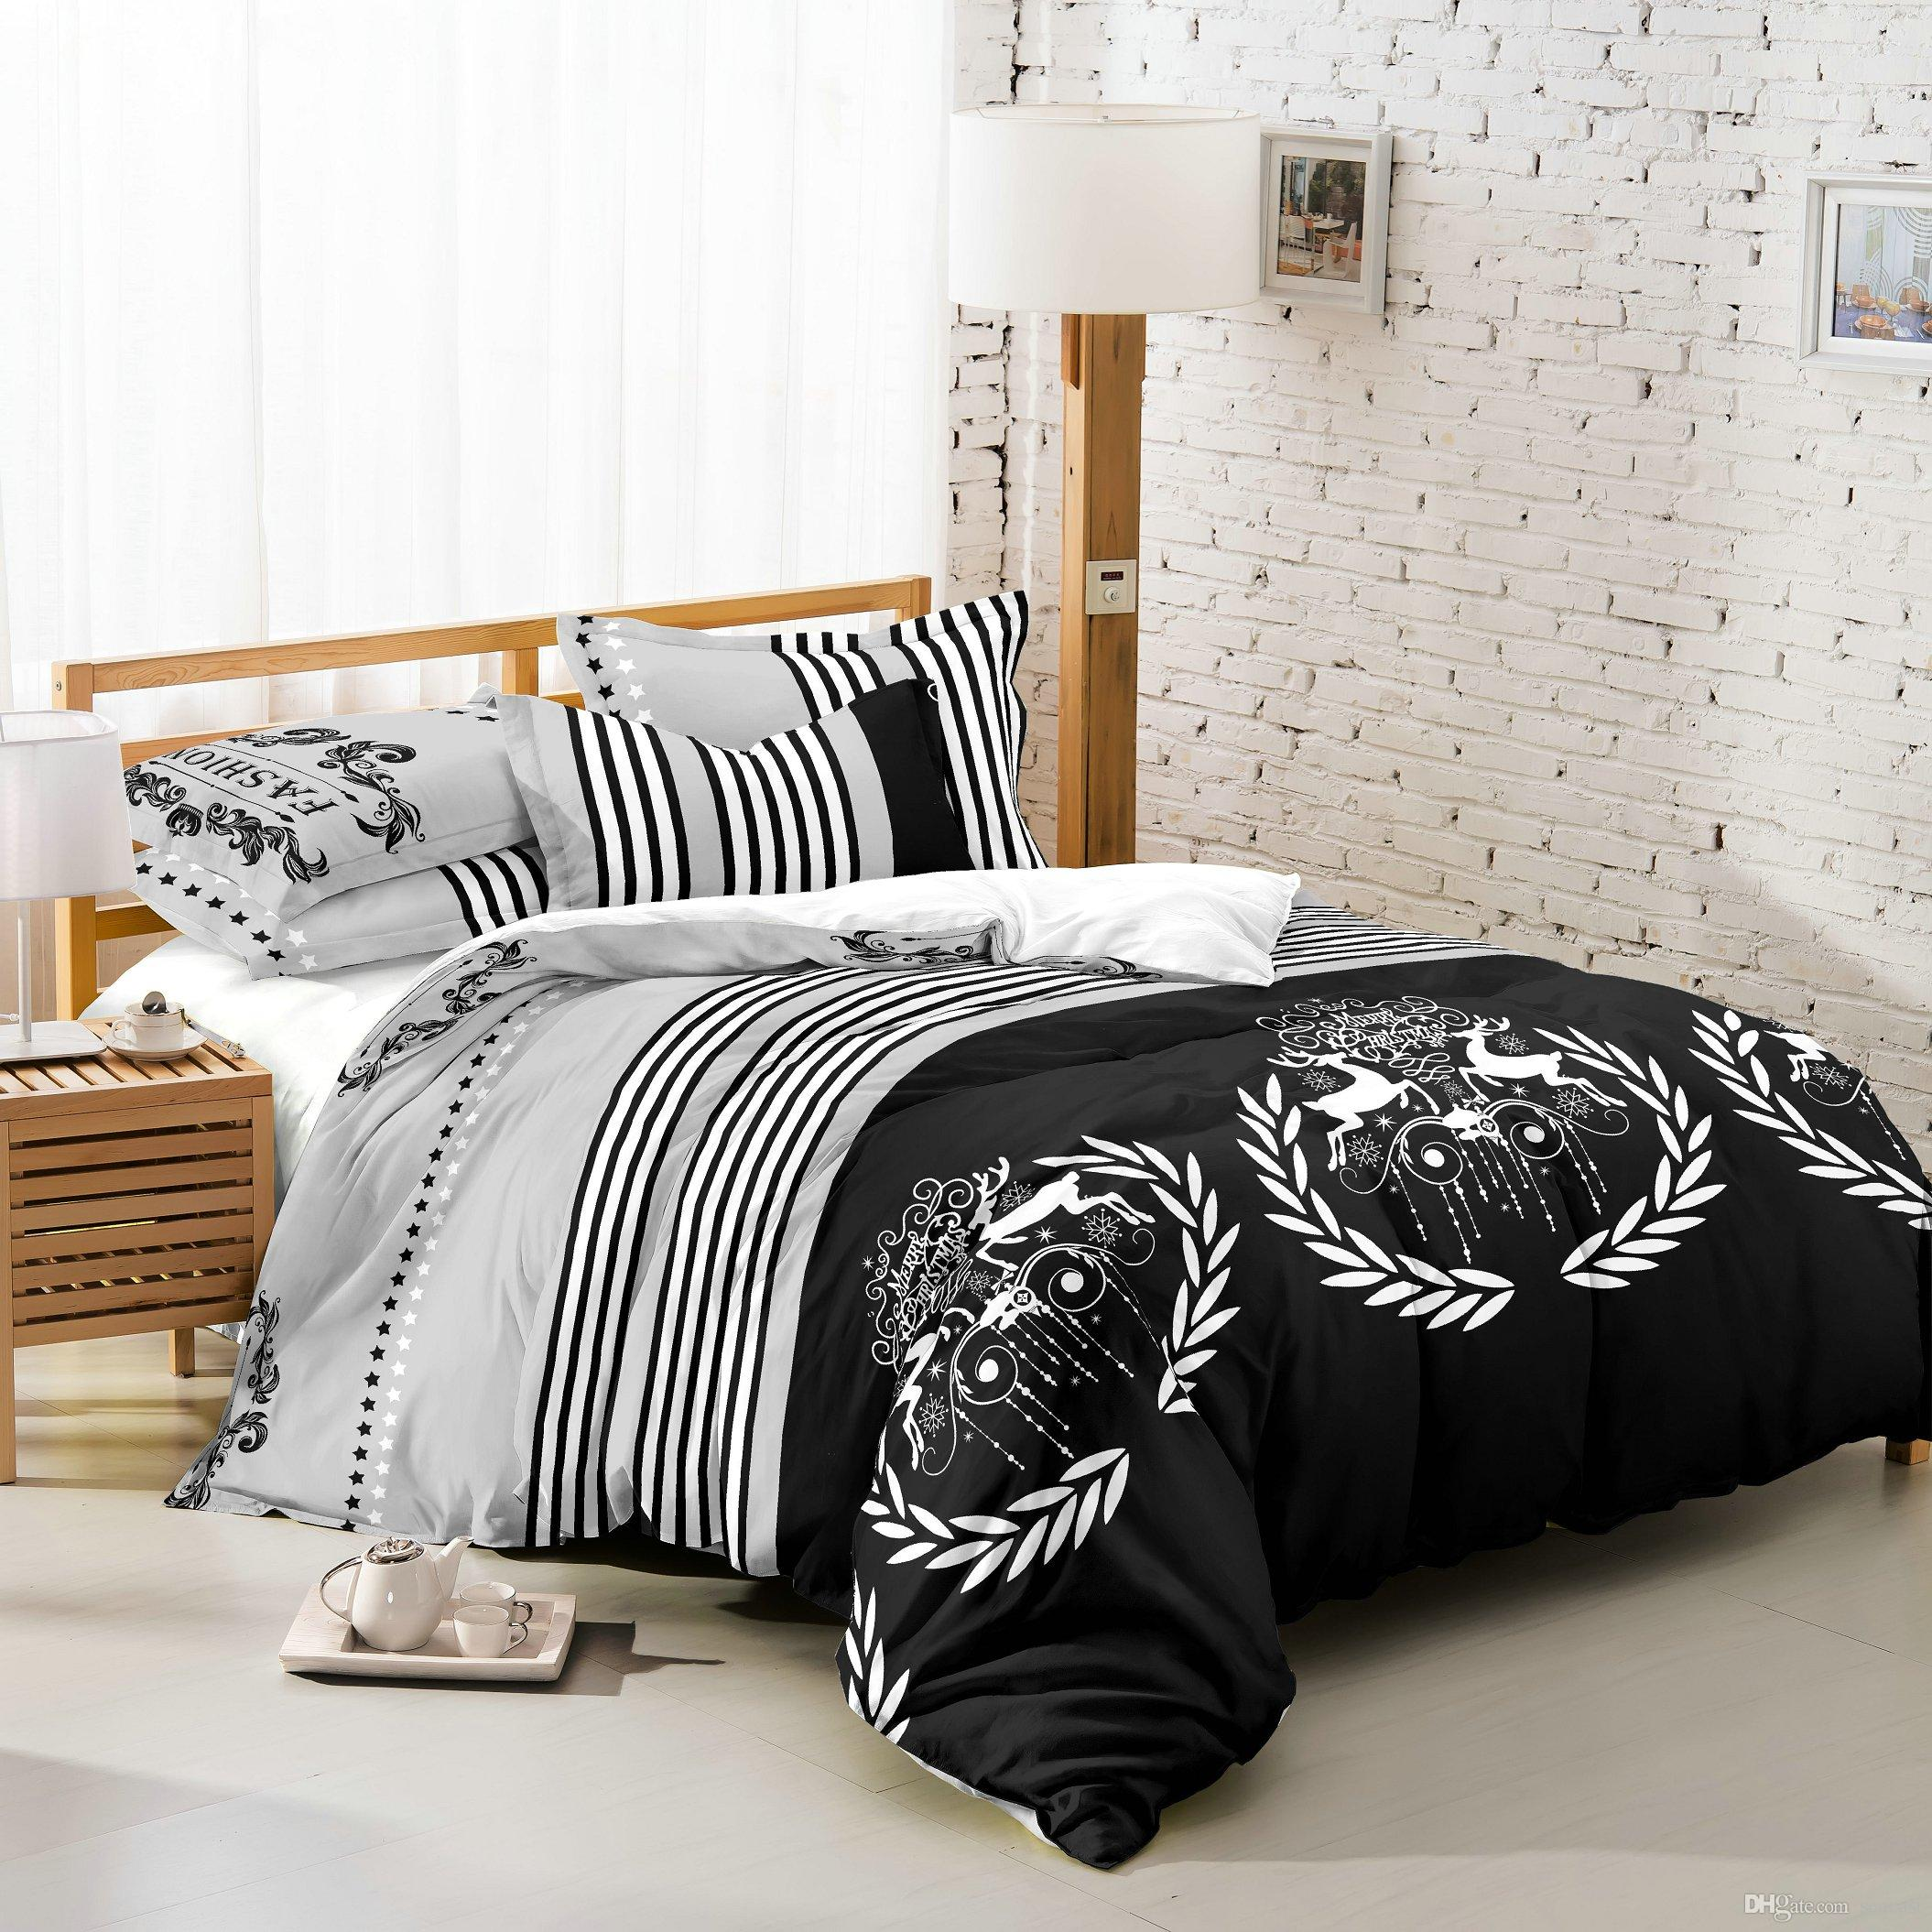 set duvet mela views luxury check piece p houndstooth size htm alternative cover queen dolce bedding